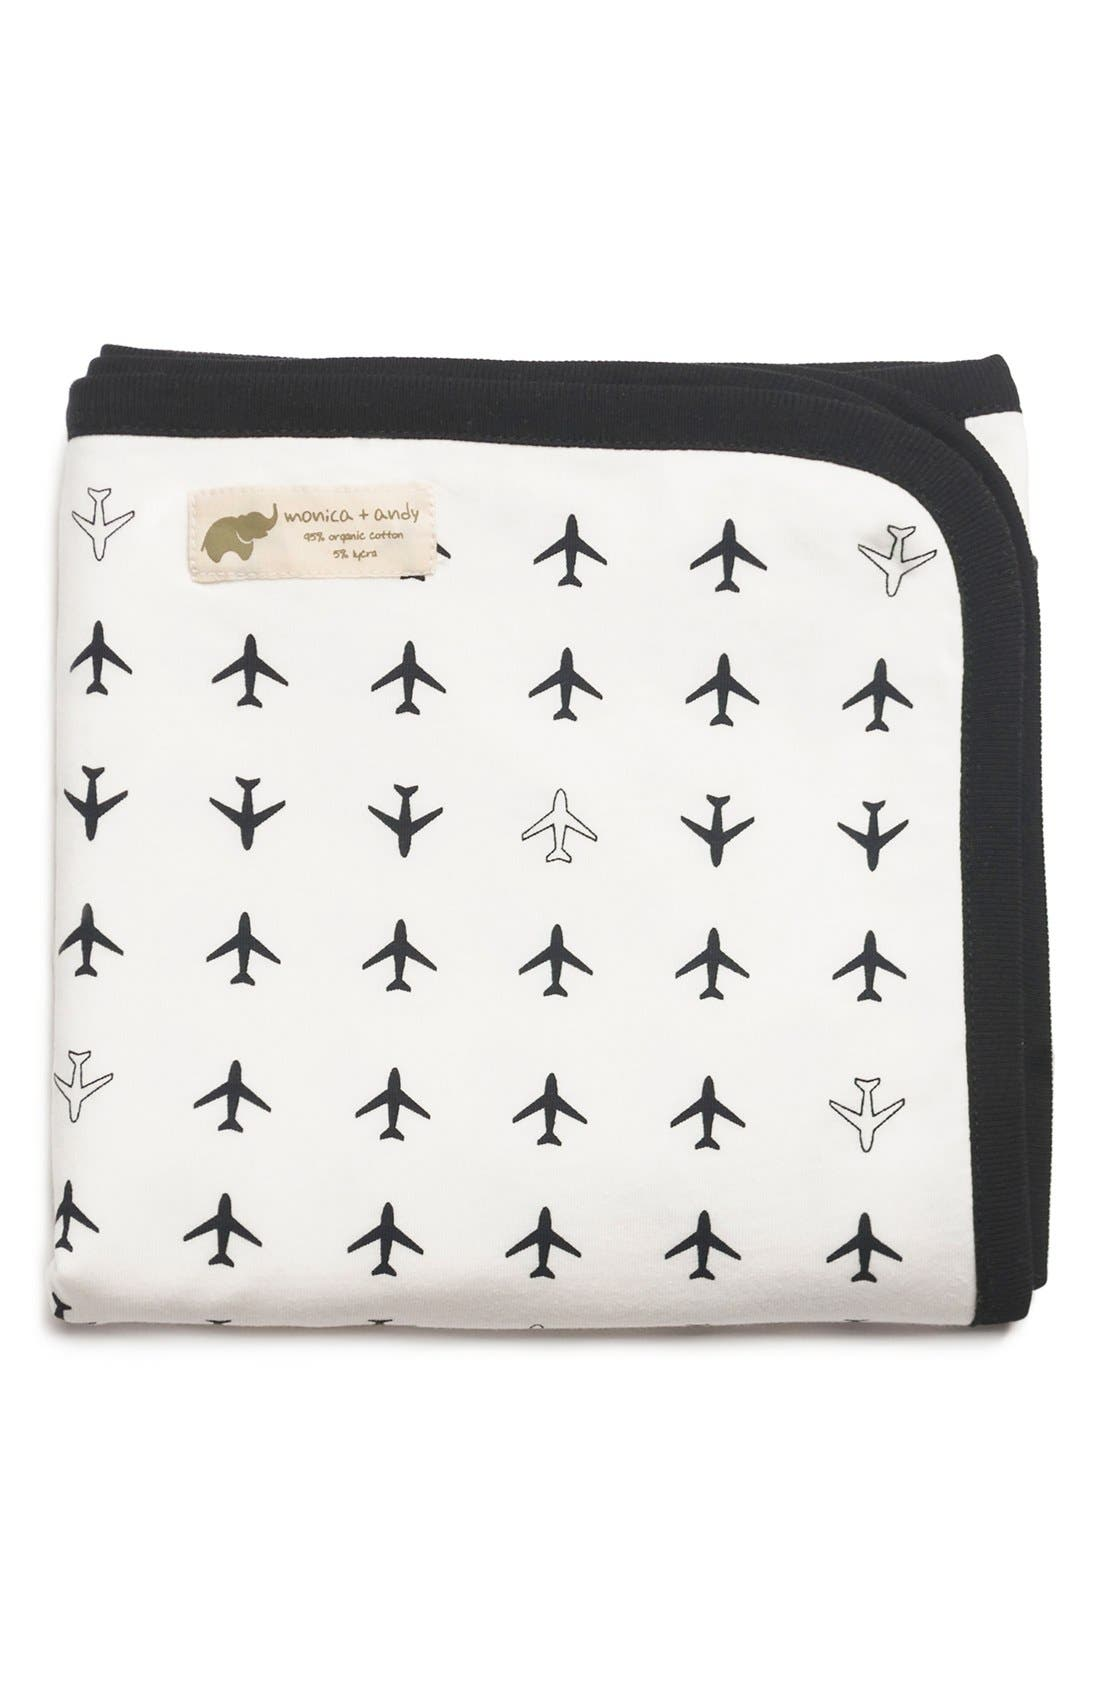 'Coming Home' Organic Cotton Blanket,                             Main thumbnail 1, color,                             001